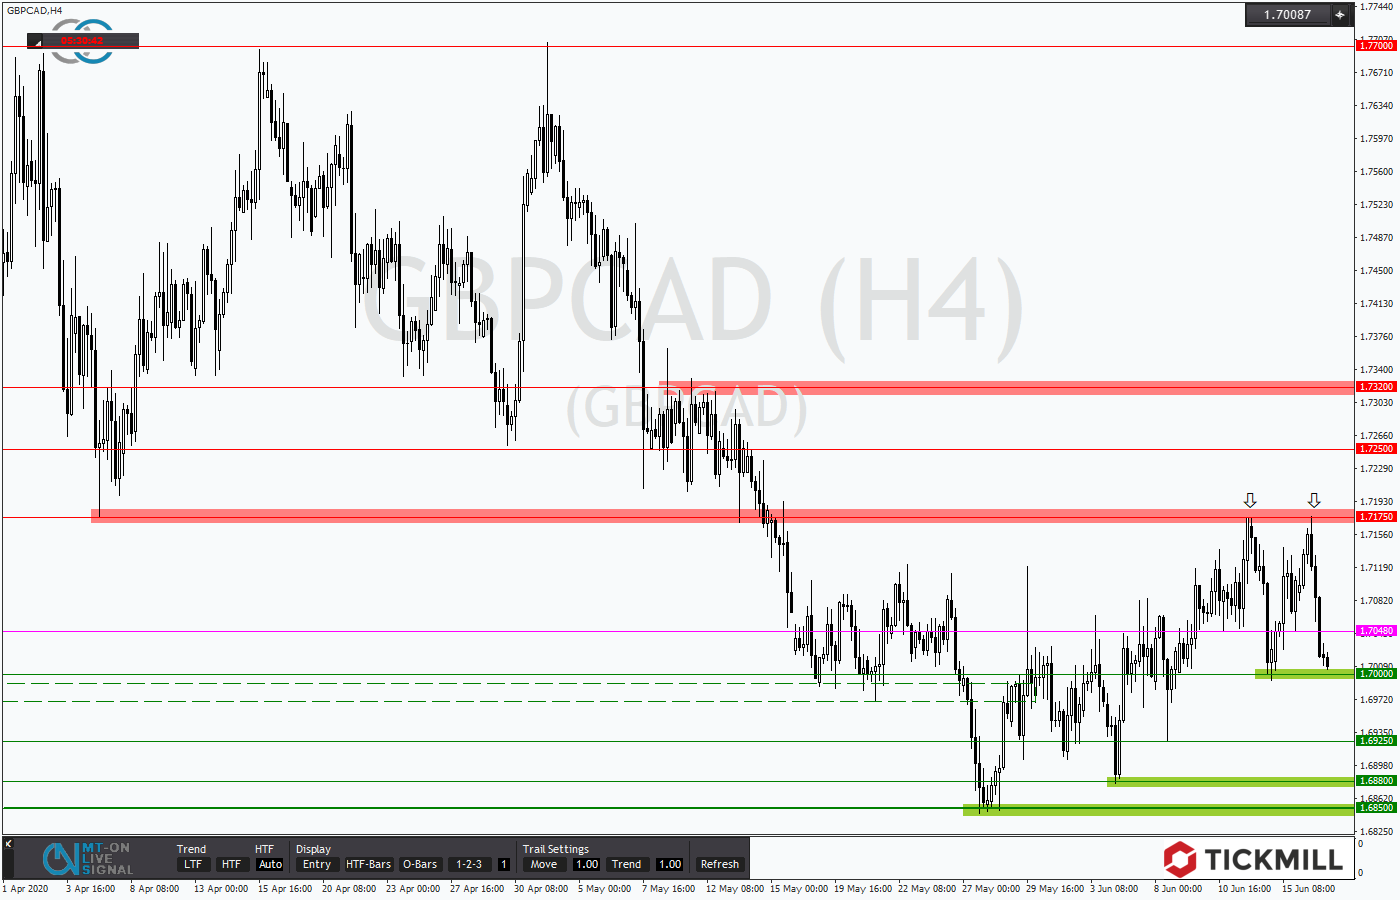 Tickmill-Analyse: GBPCAD mit Doppeltop